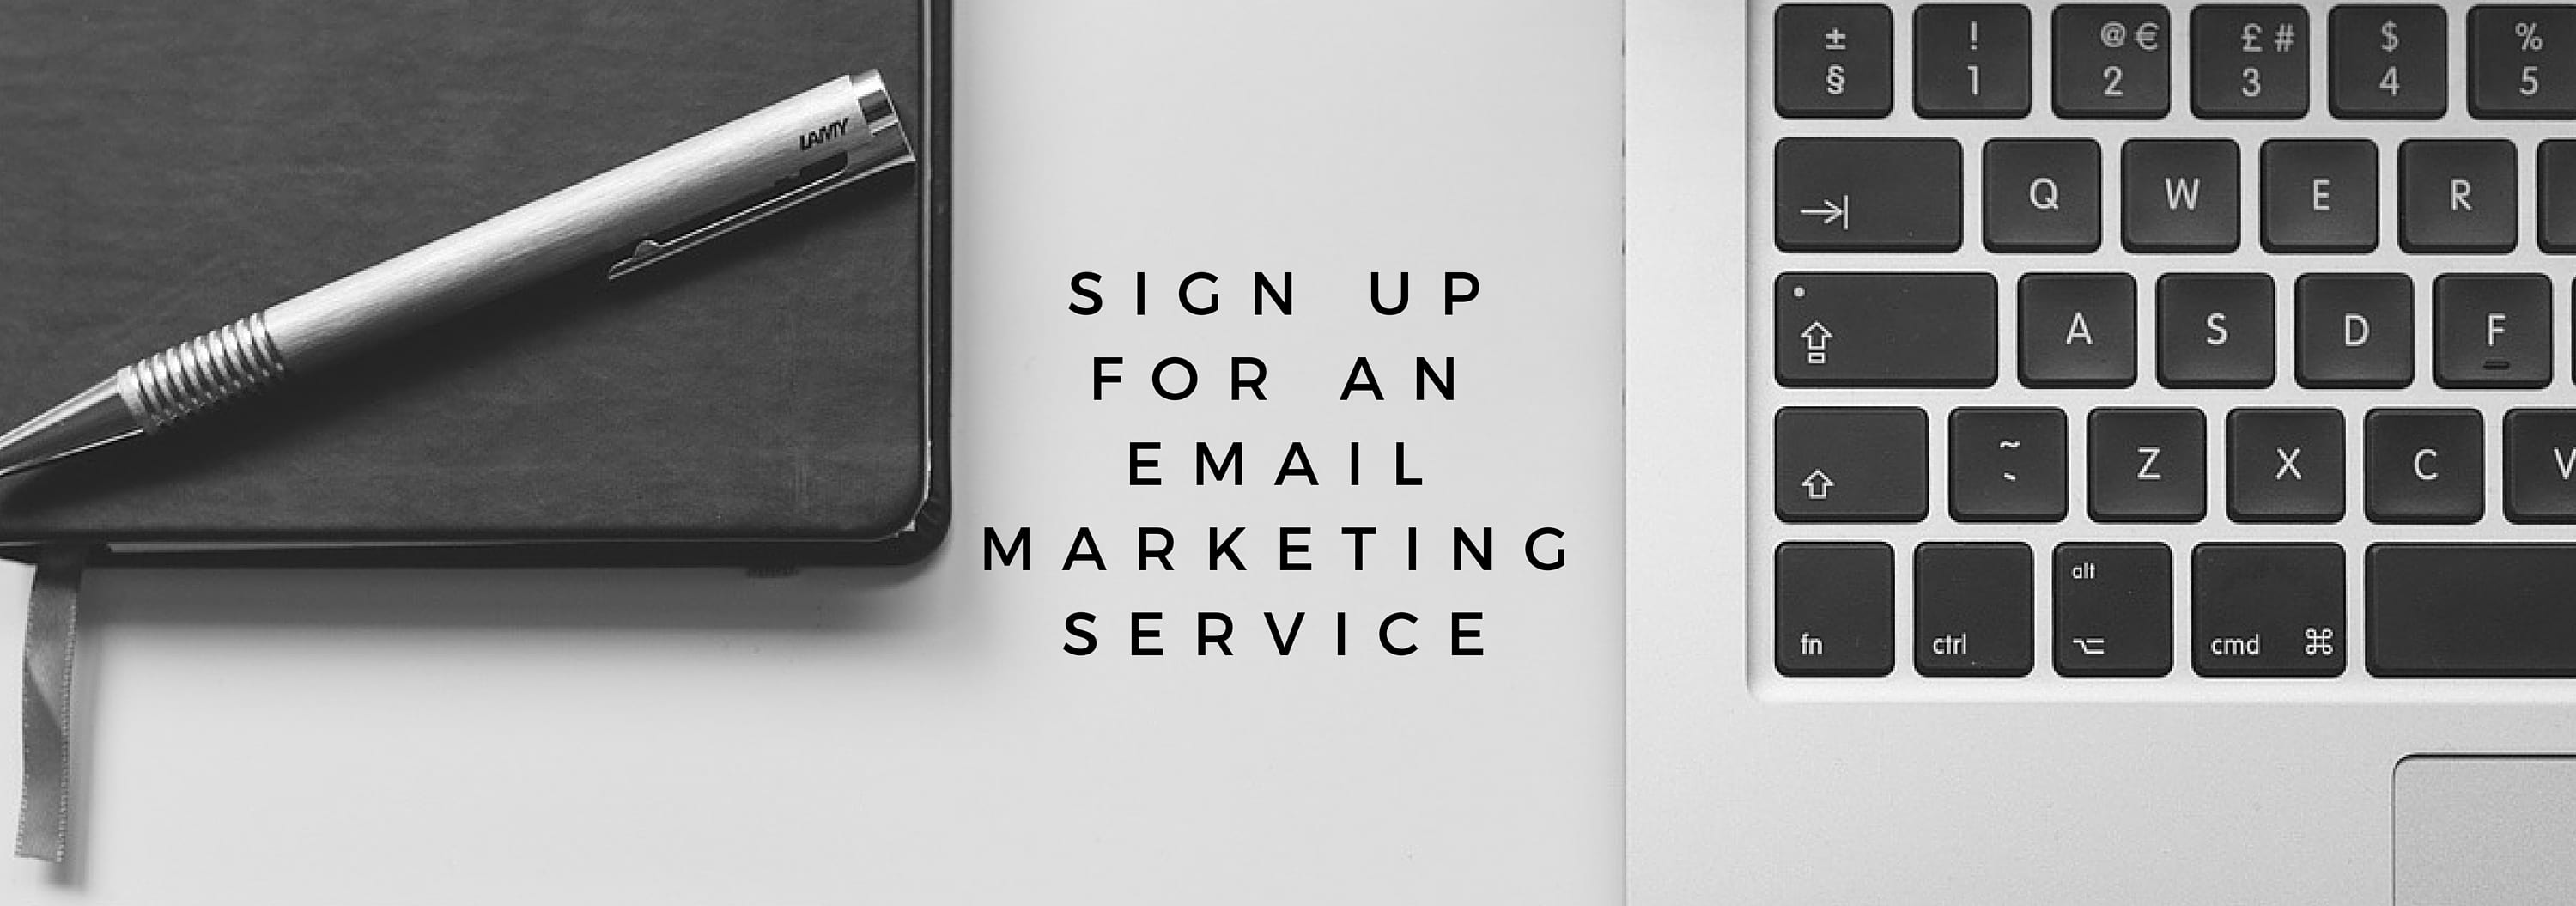 sign up for an email marketing service